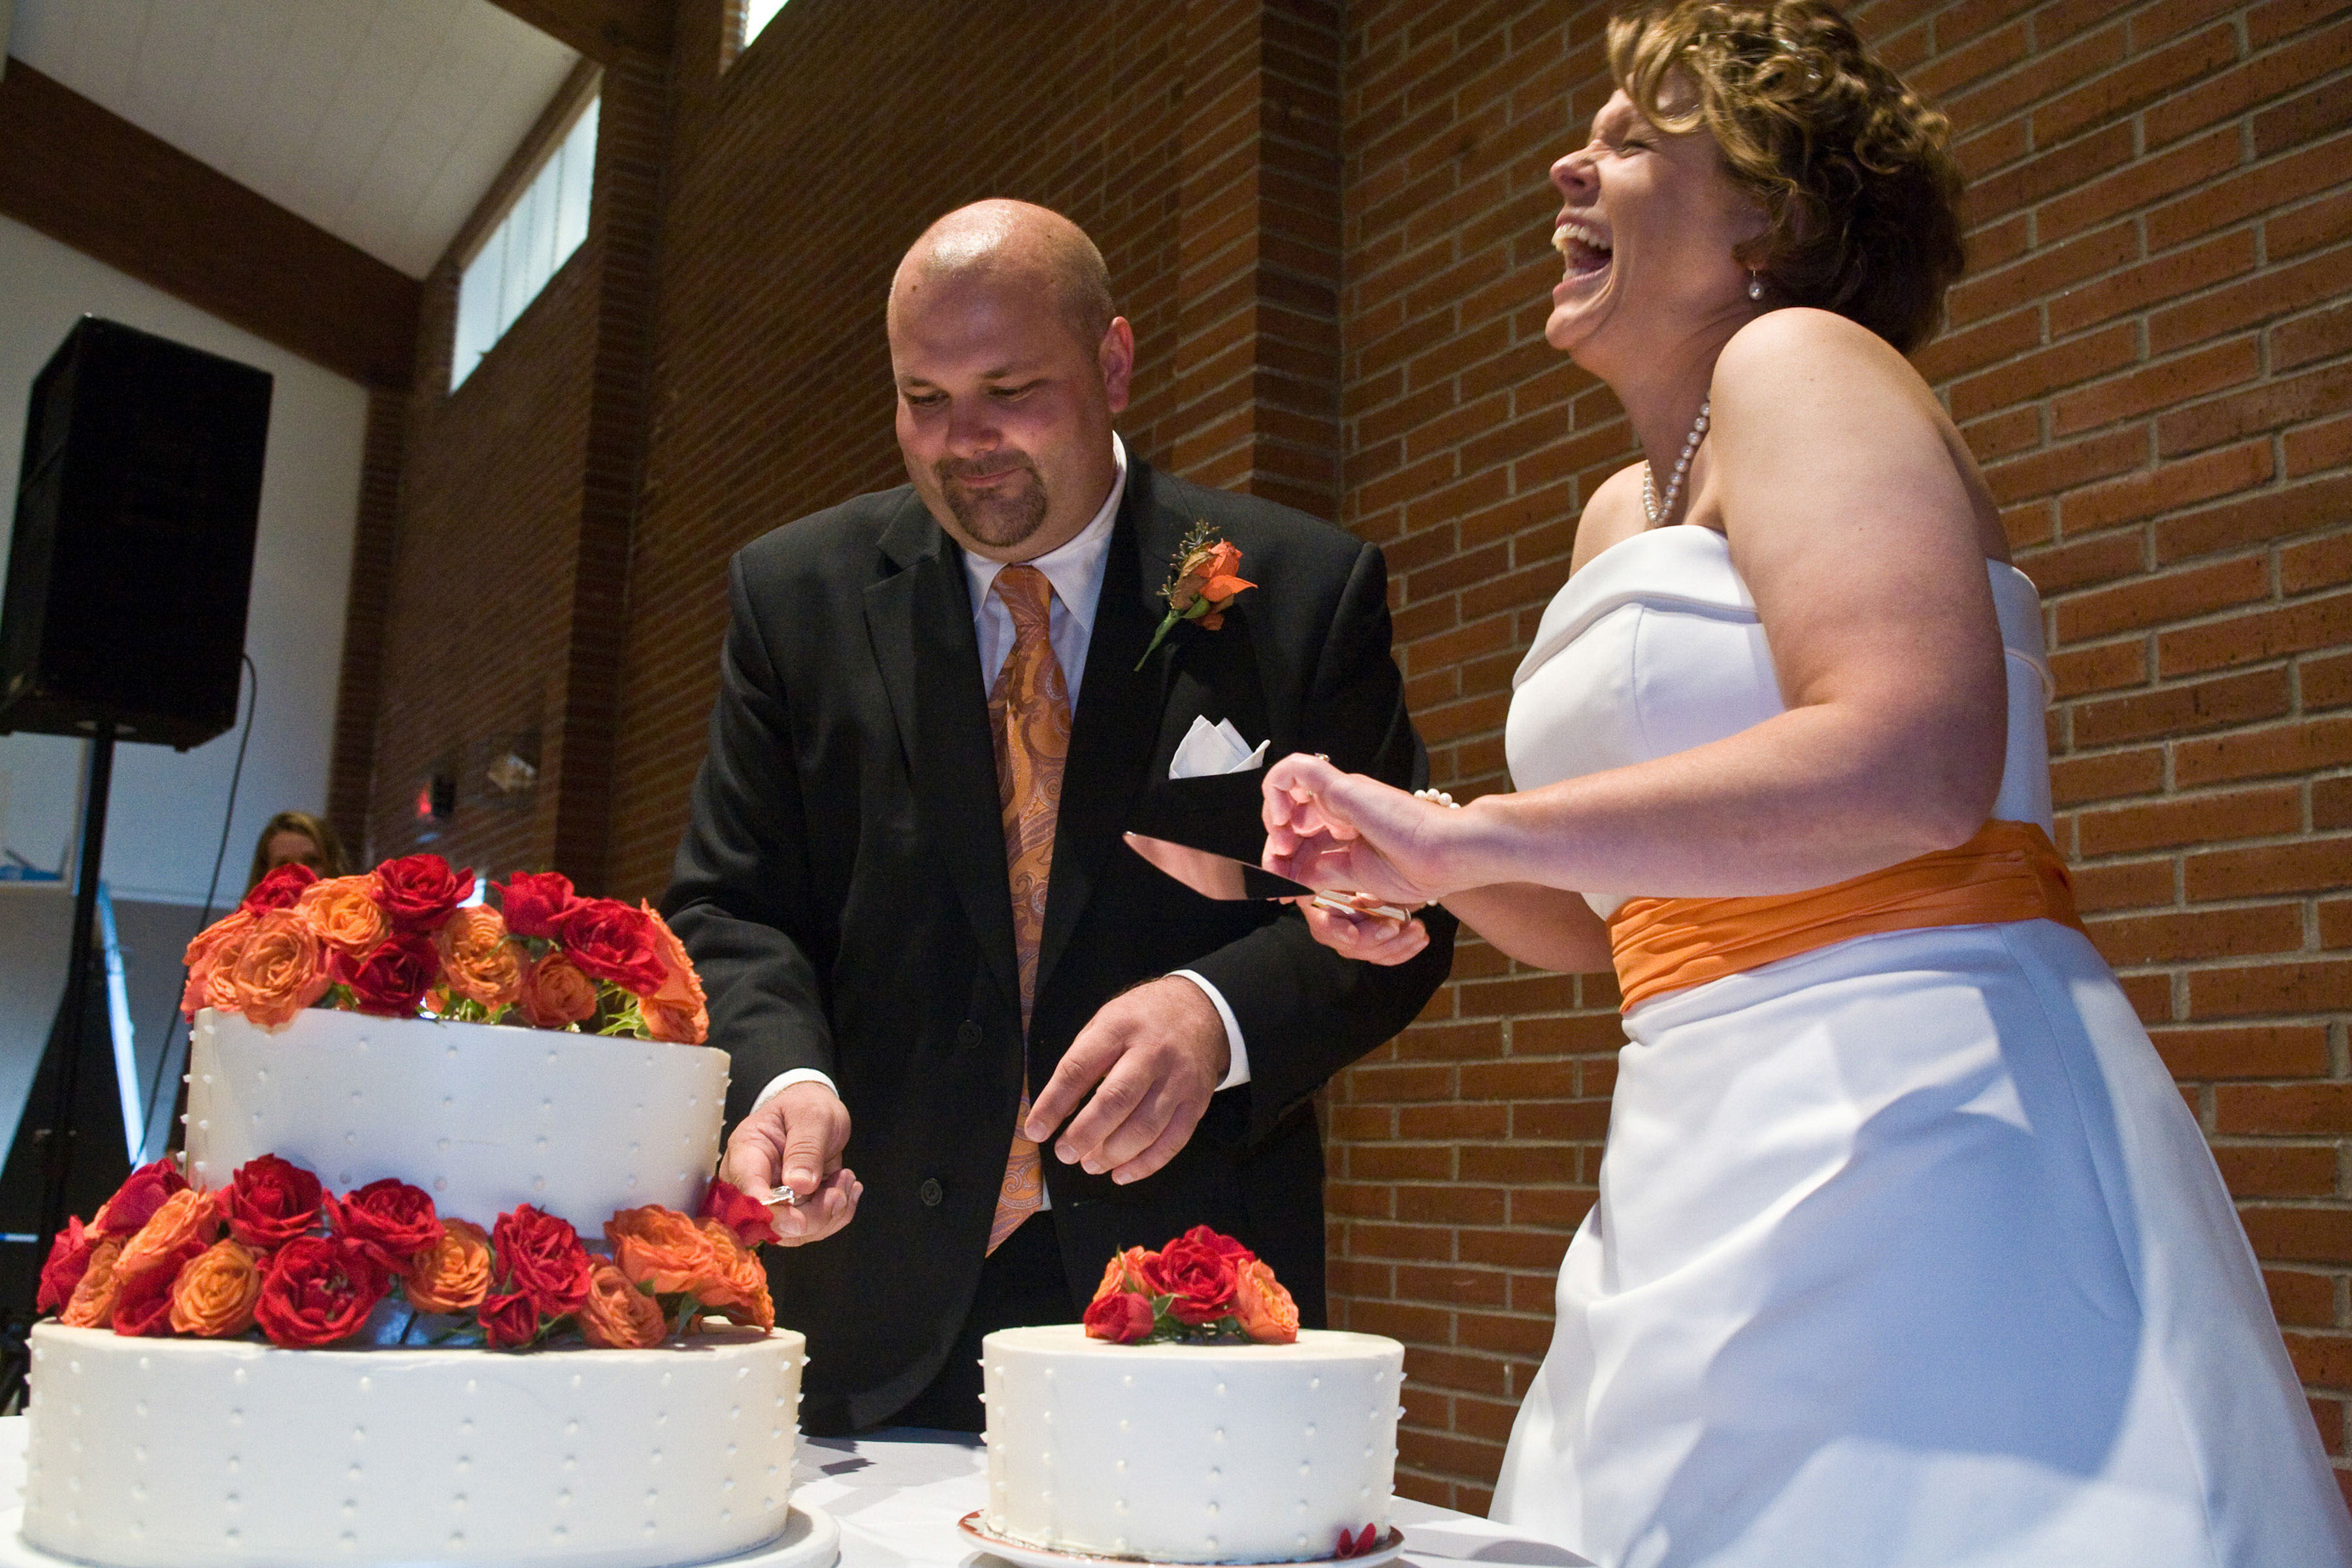 Brid and  groom laugh during portland wedding cake cutting